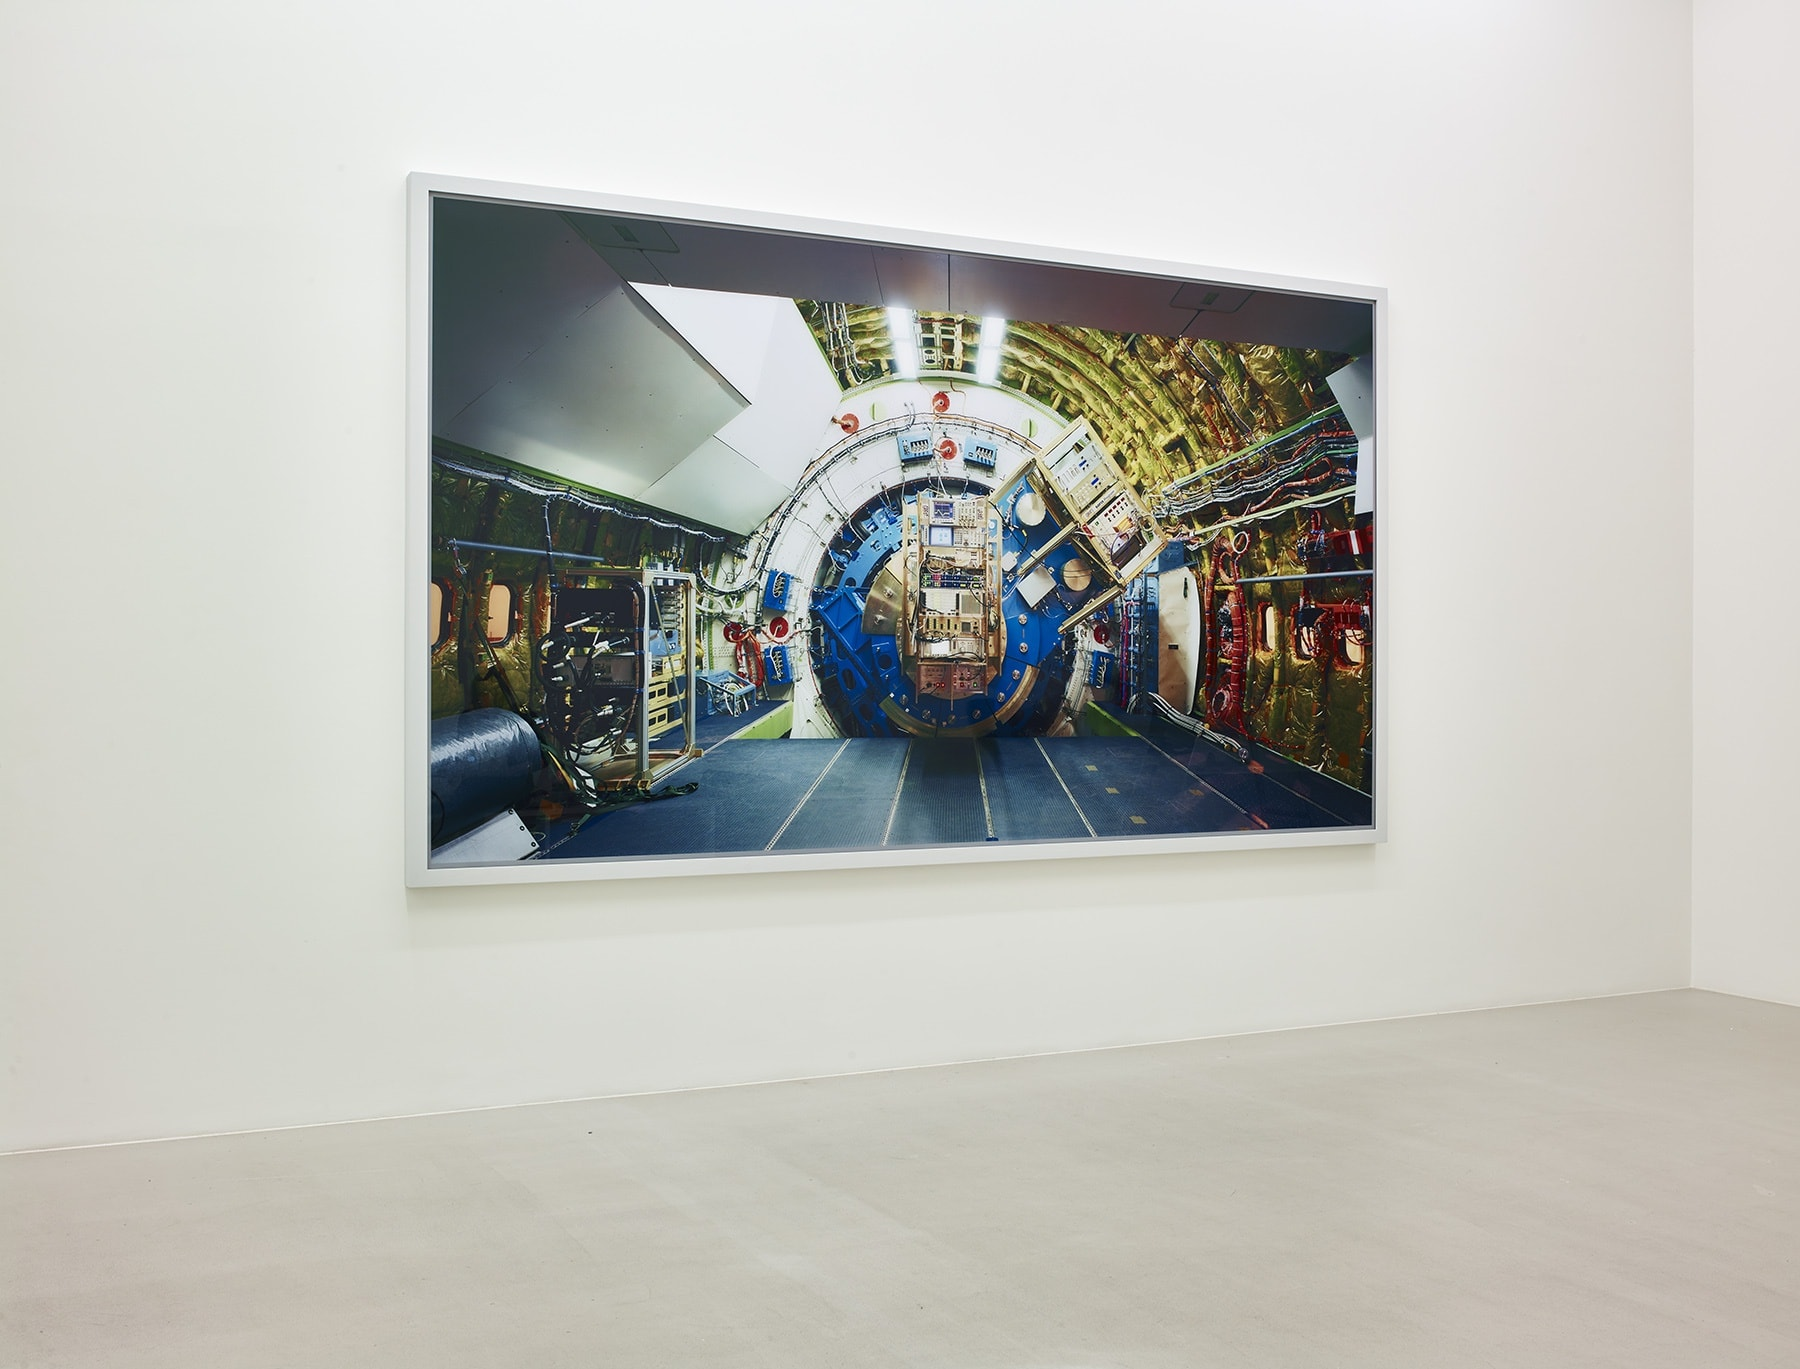 On a white wall, a large rectangular photo, framed in white, shows the interior of what appears to be a spaceship - heavy gold, blue, and white machinery.